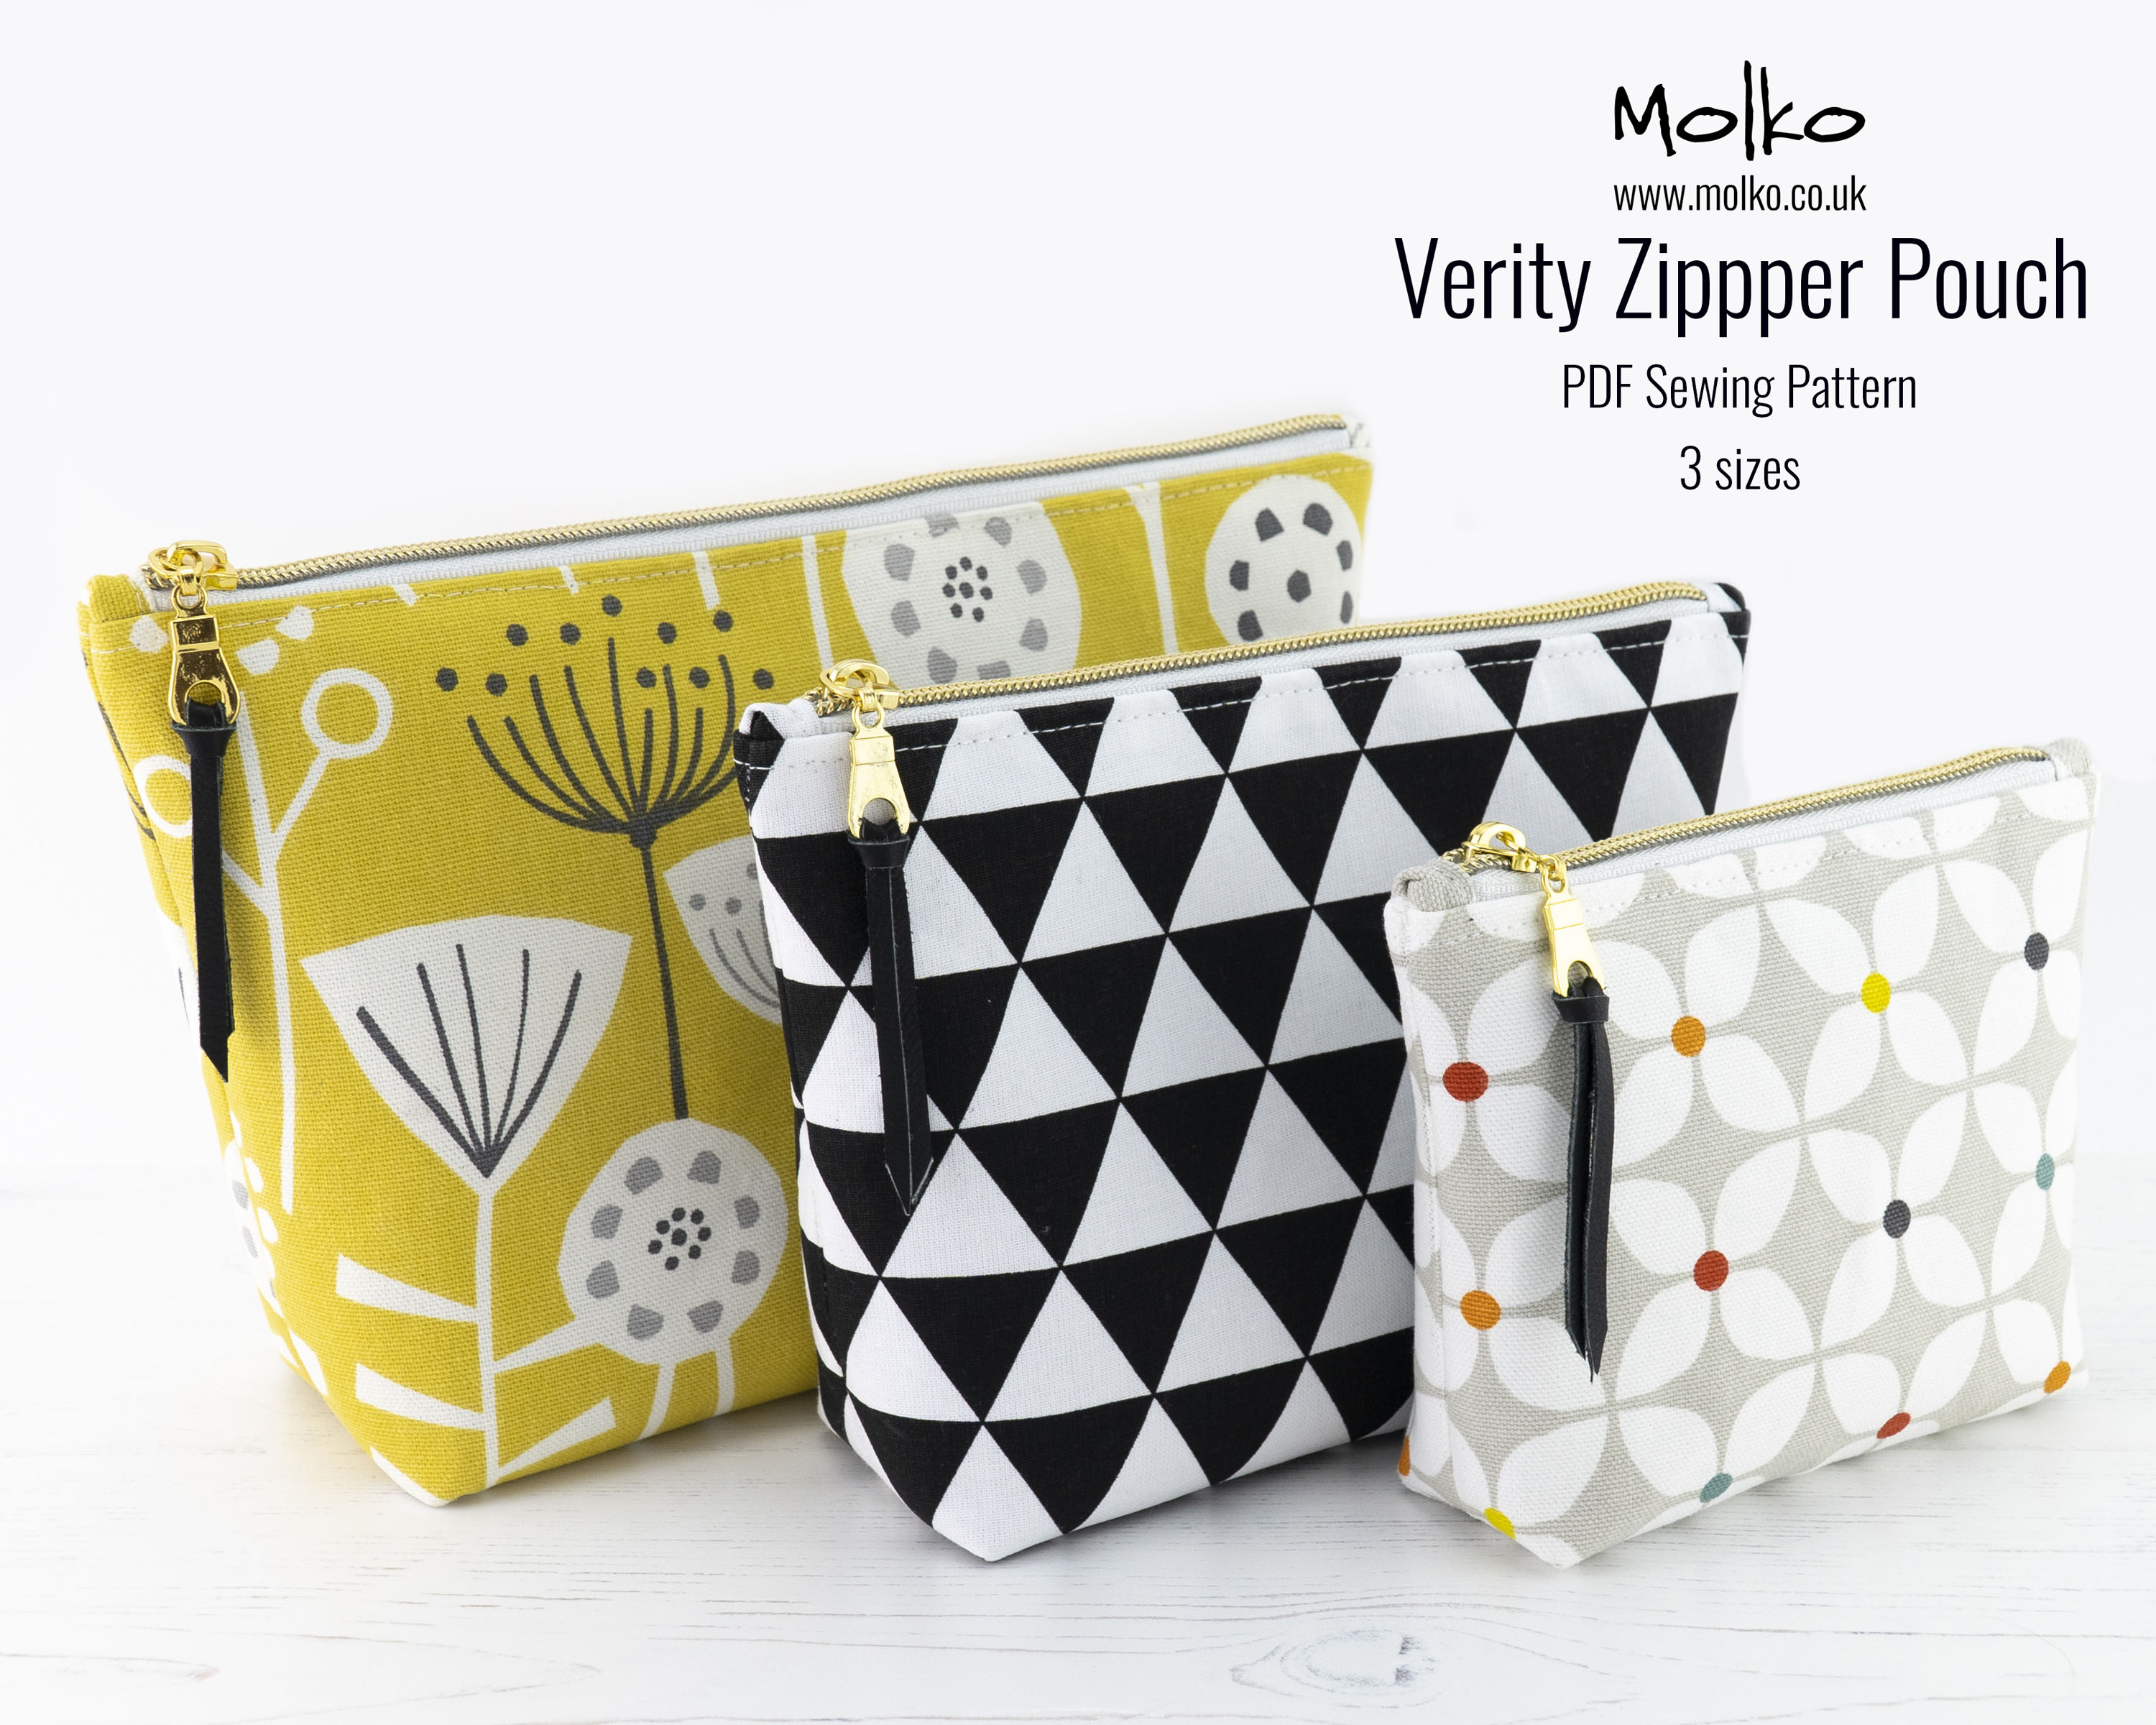 VERITY PDF PATTERN - MOLKO (1)